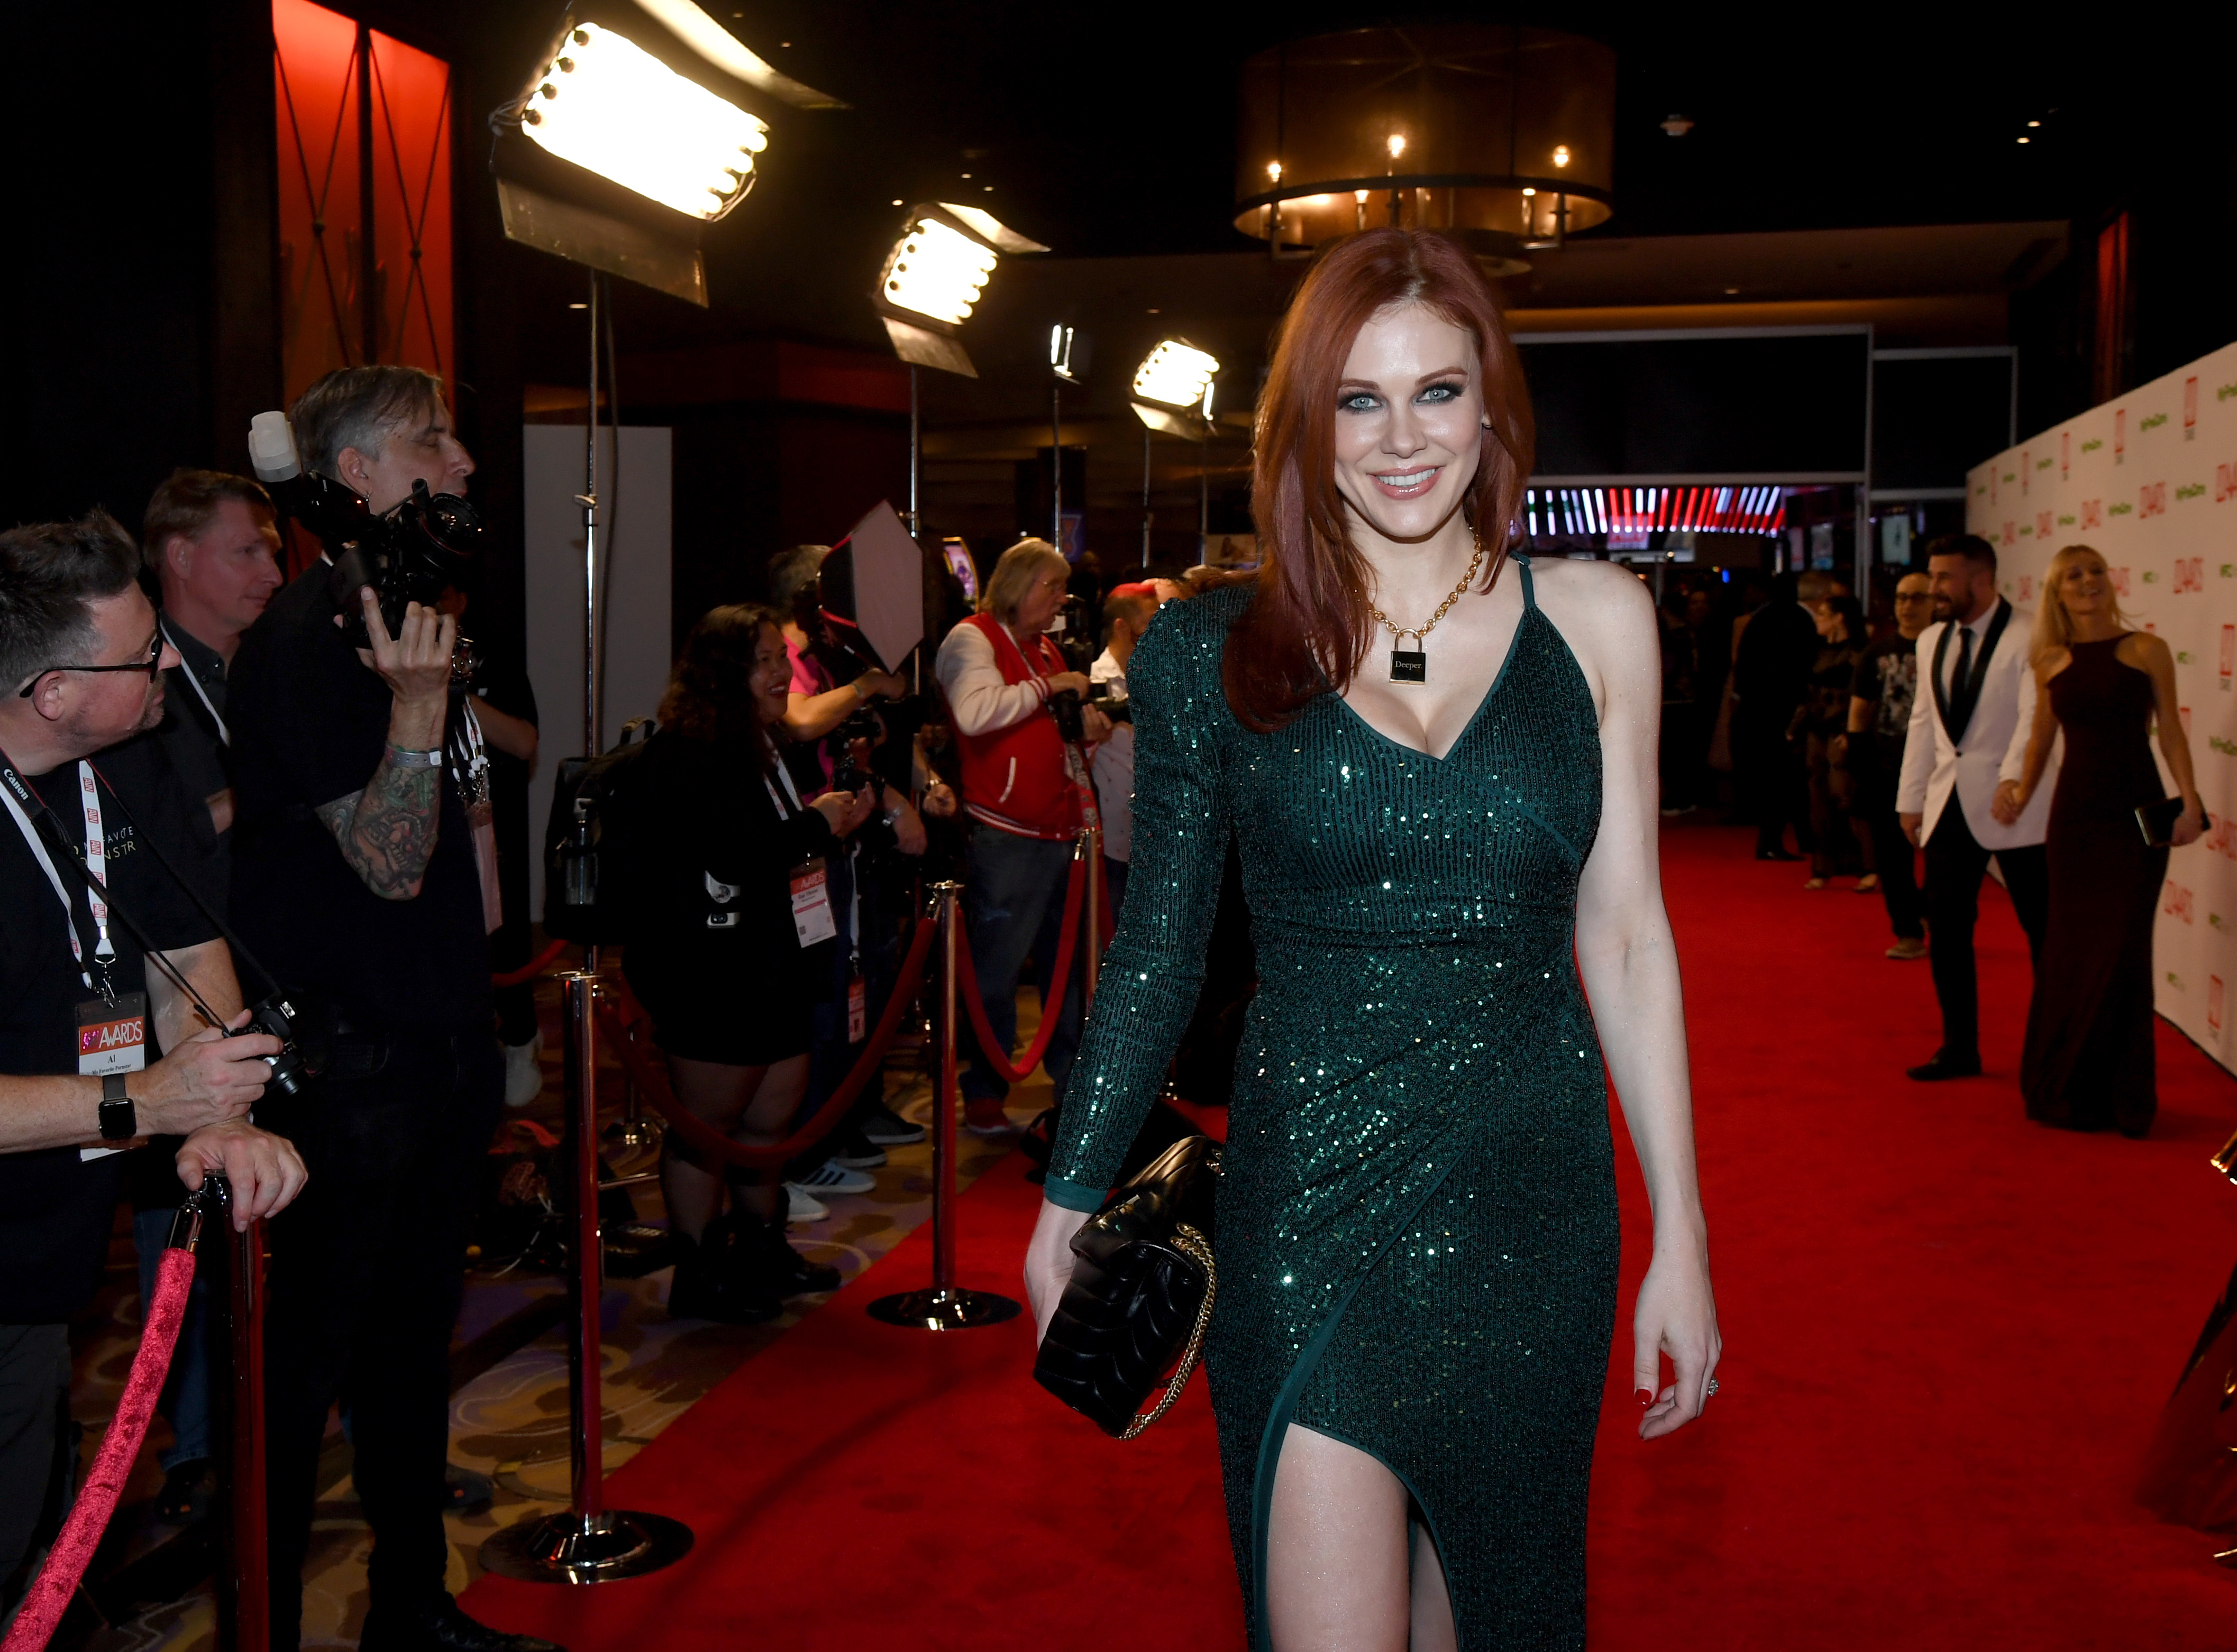 Actress Maitland Ward attends the 2020 Adult Video News Awards at The Joint inside the Hard Rock Hotel & Casino on January 25, 2020 in Las Vegas, Nevada. on January 25, 2020 in Las Vegas, Nevada. (Photo by Ethan Miller/Getty Images)